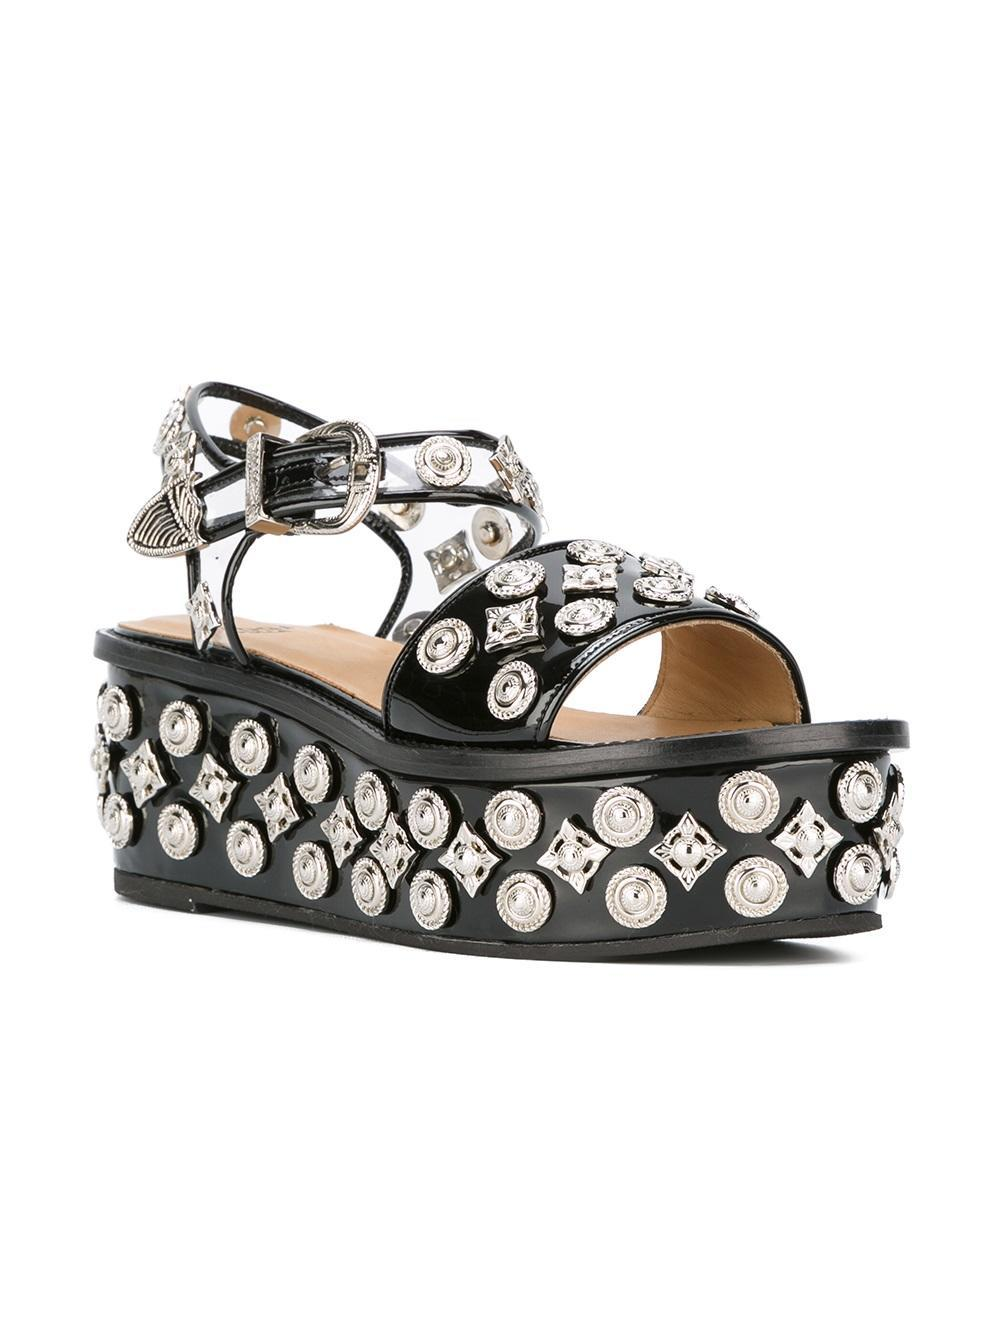 Toga Pulla studded platform sandals clearance best store to get sale limited edition 2014 newest clearance official site cK45qkn13